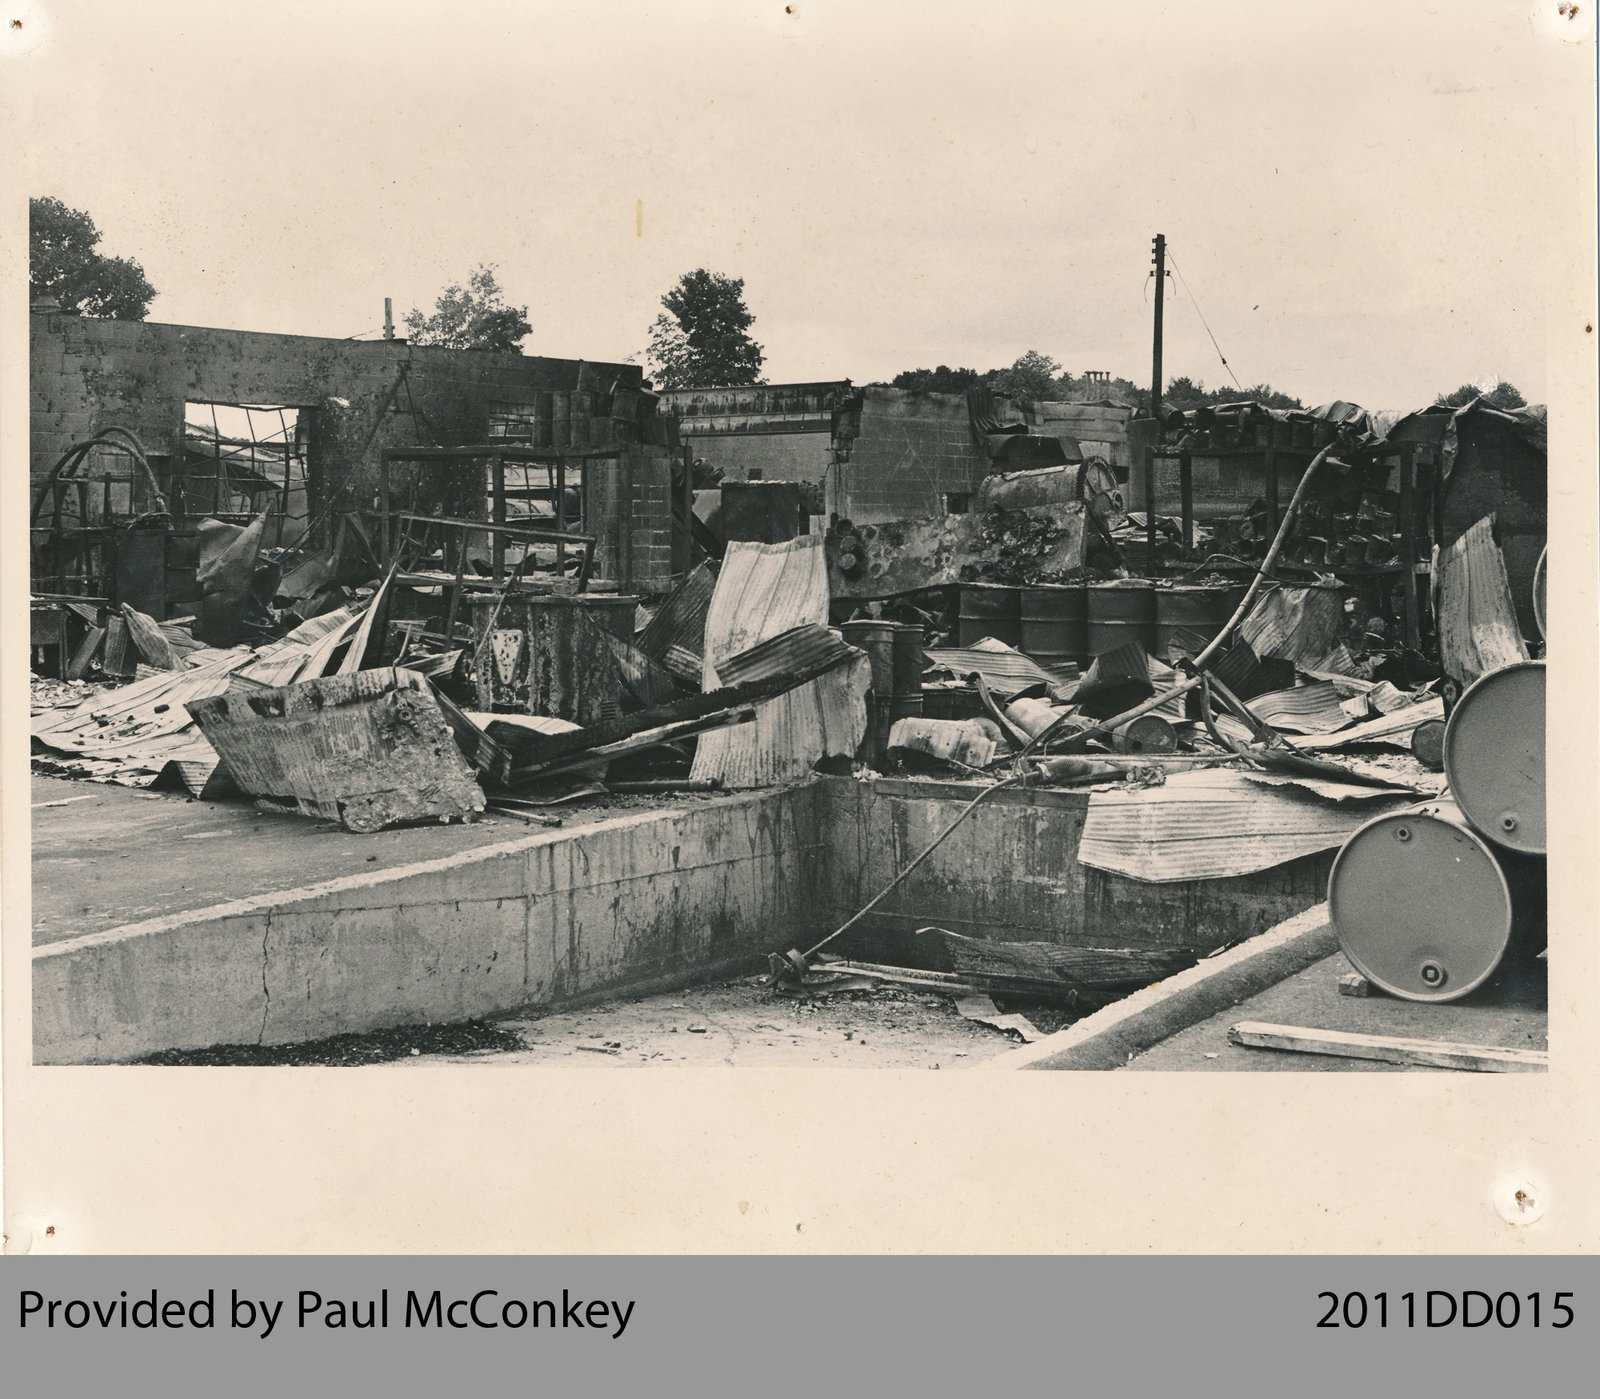 Lee Paint Factory Fire Aftermath